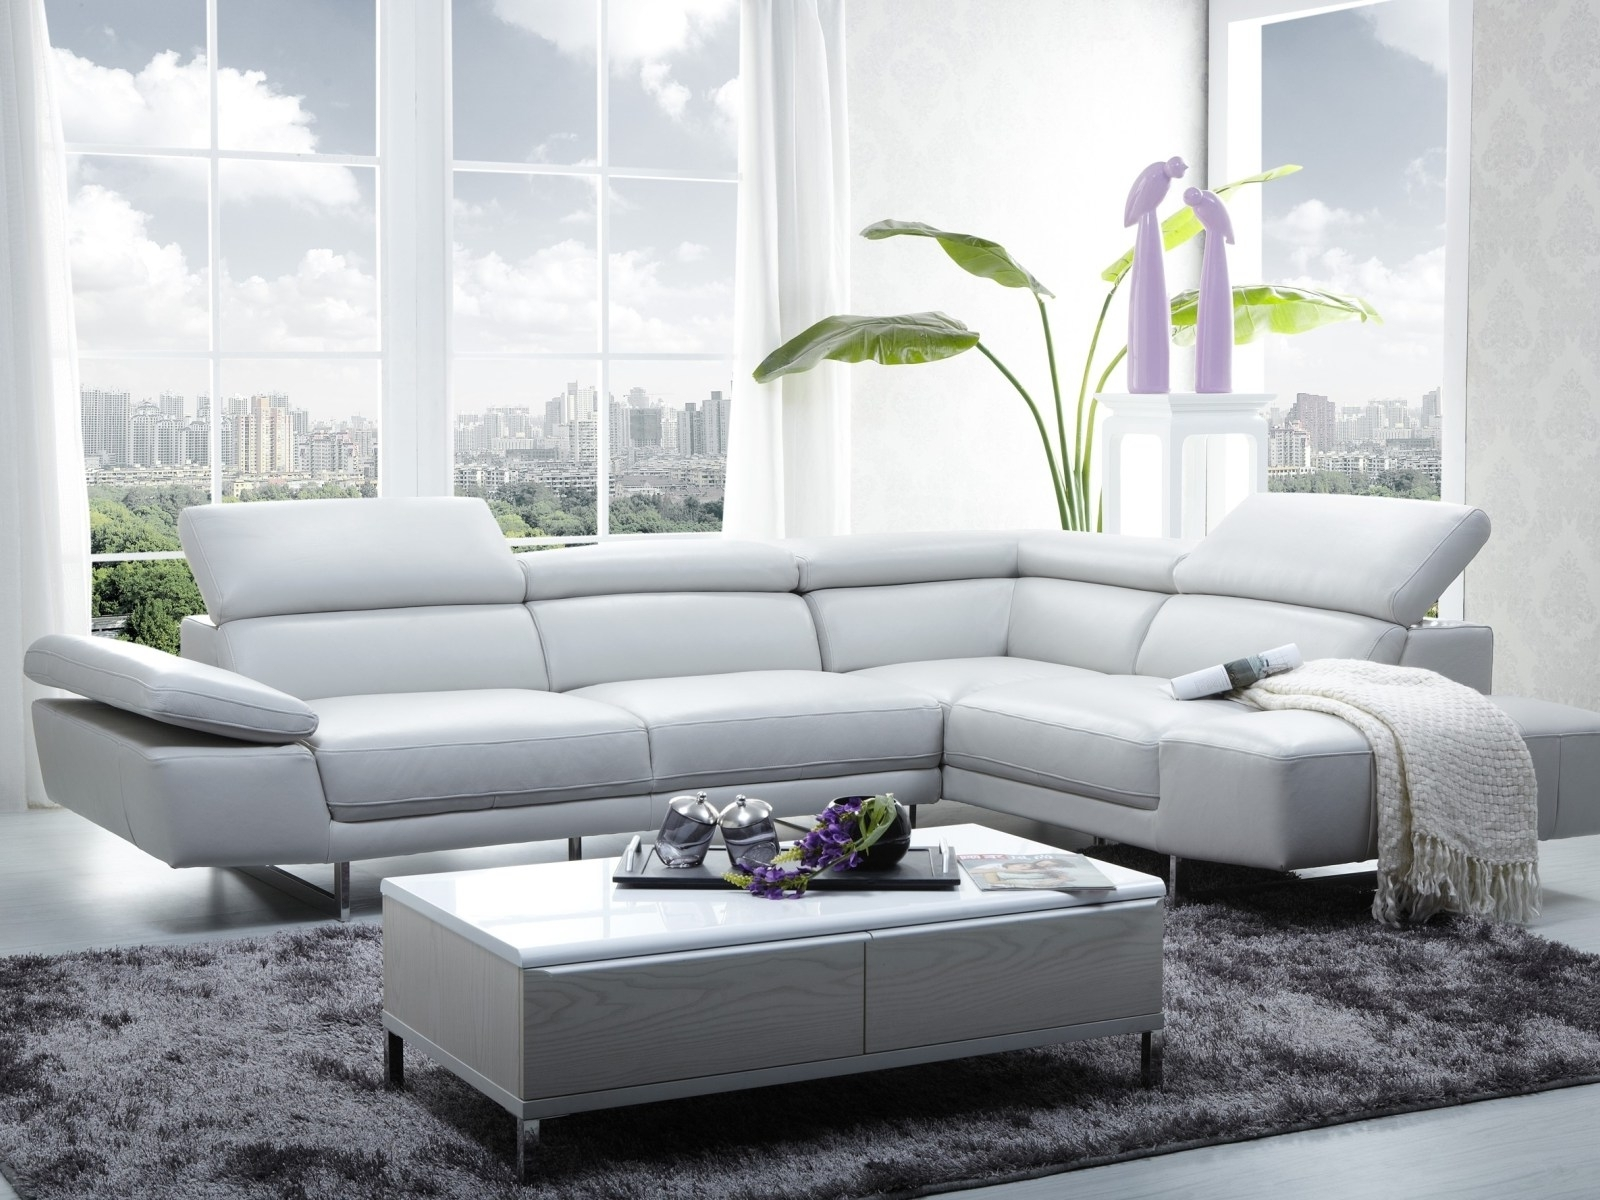 Trendy Sectional Sofas That Can Be Rearranged Regarding ▻ Sofa : 15 3058702 Poster P 1 A Modular Sofa That Can Rearrange (View 17 of 20)